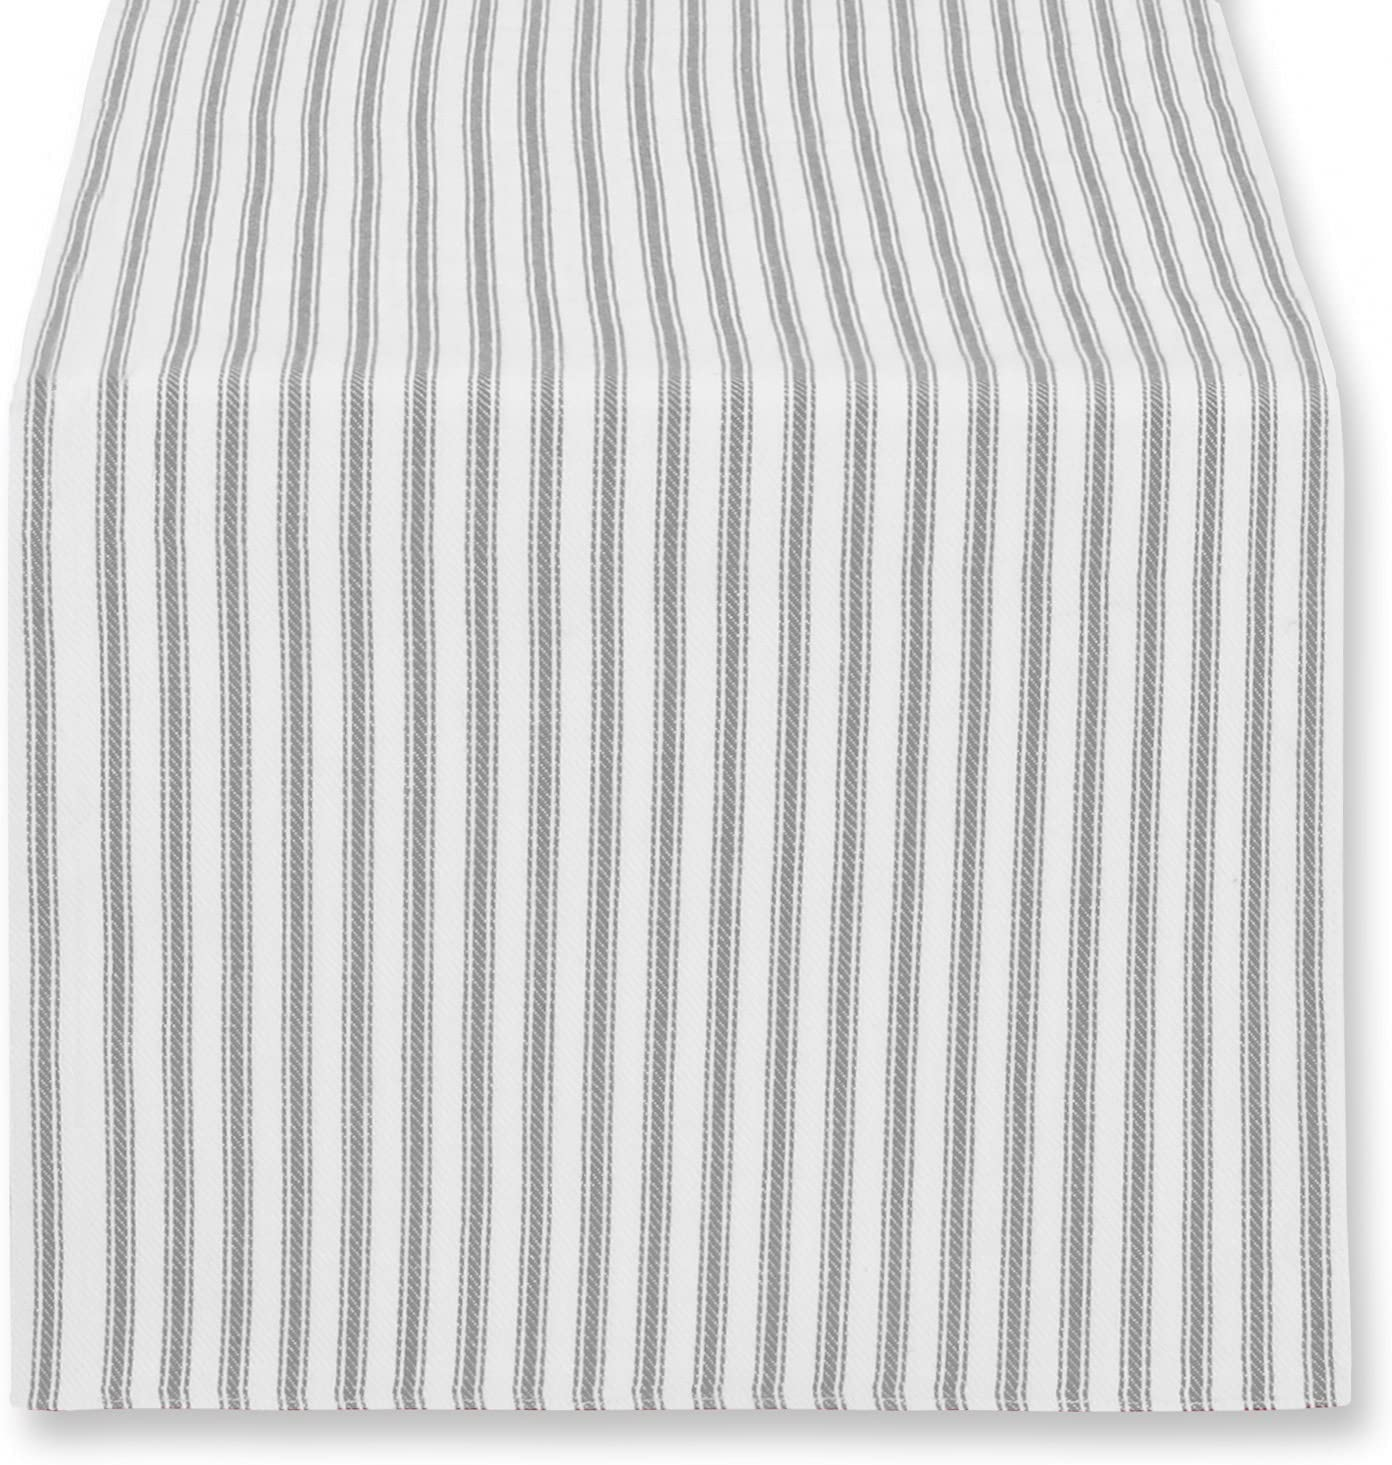 Cackleberry Home Alloy Gray and White Ticking Stripe Table Runner Woven Cotton Reversible, 14 x 72 Inches